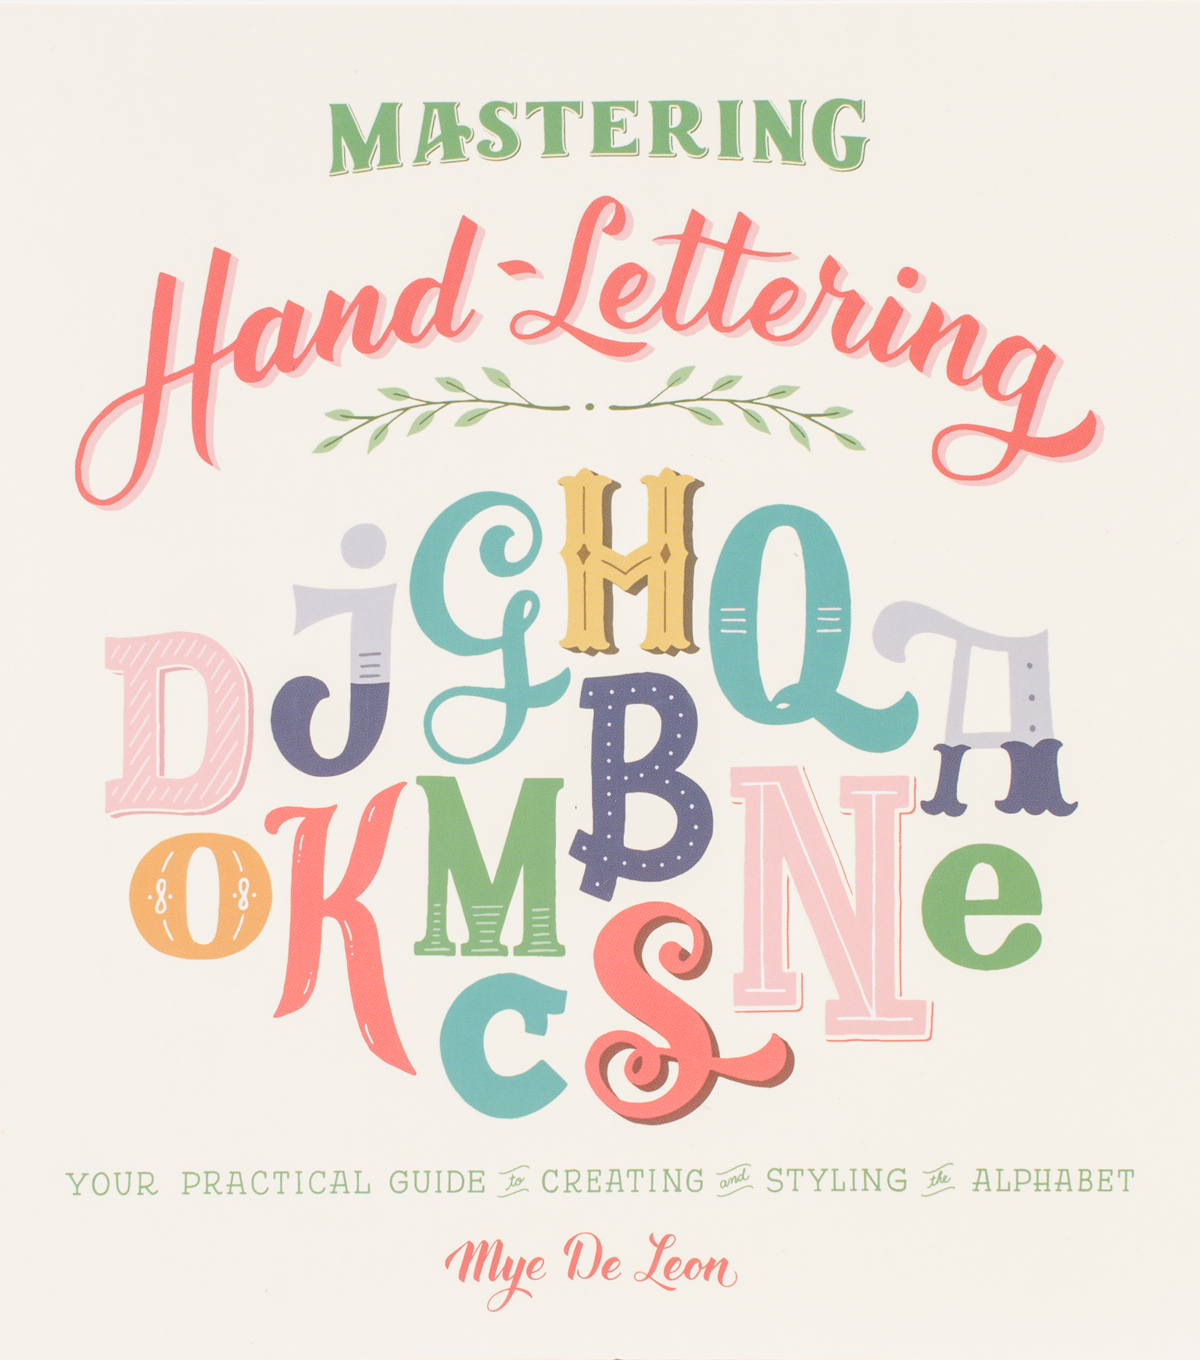 Mastering Hand Lettering Book